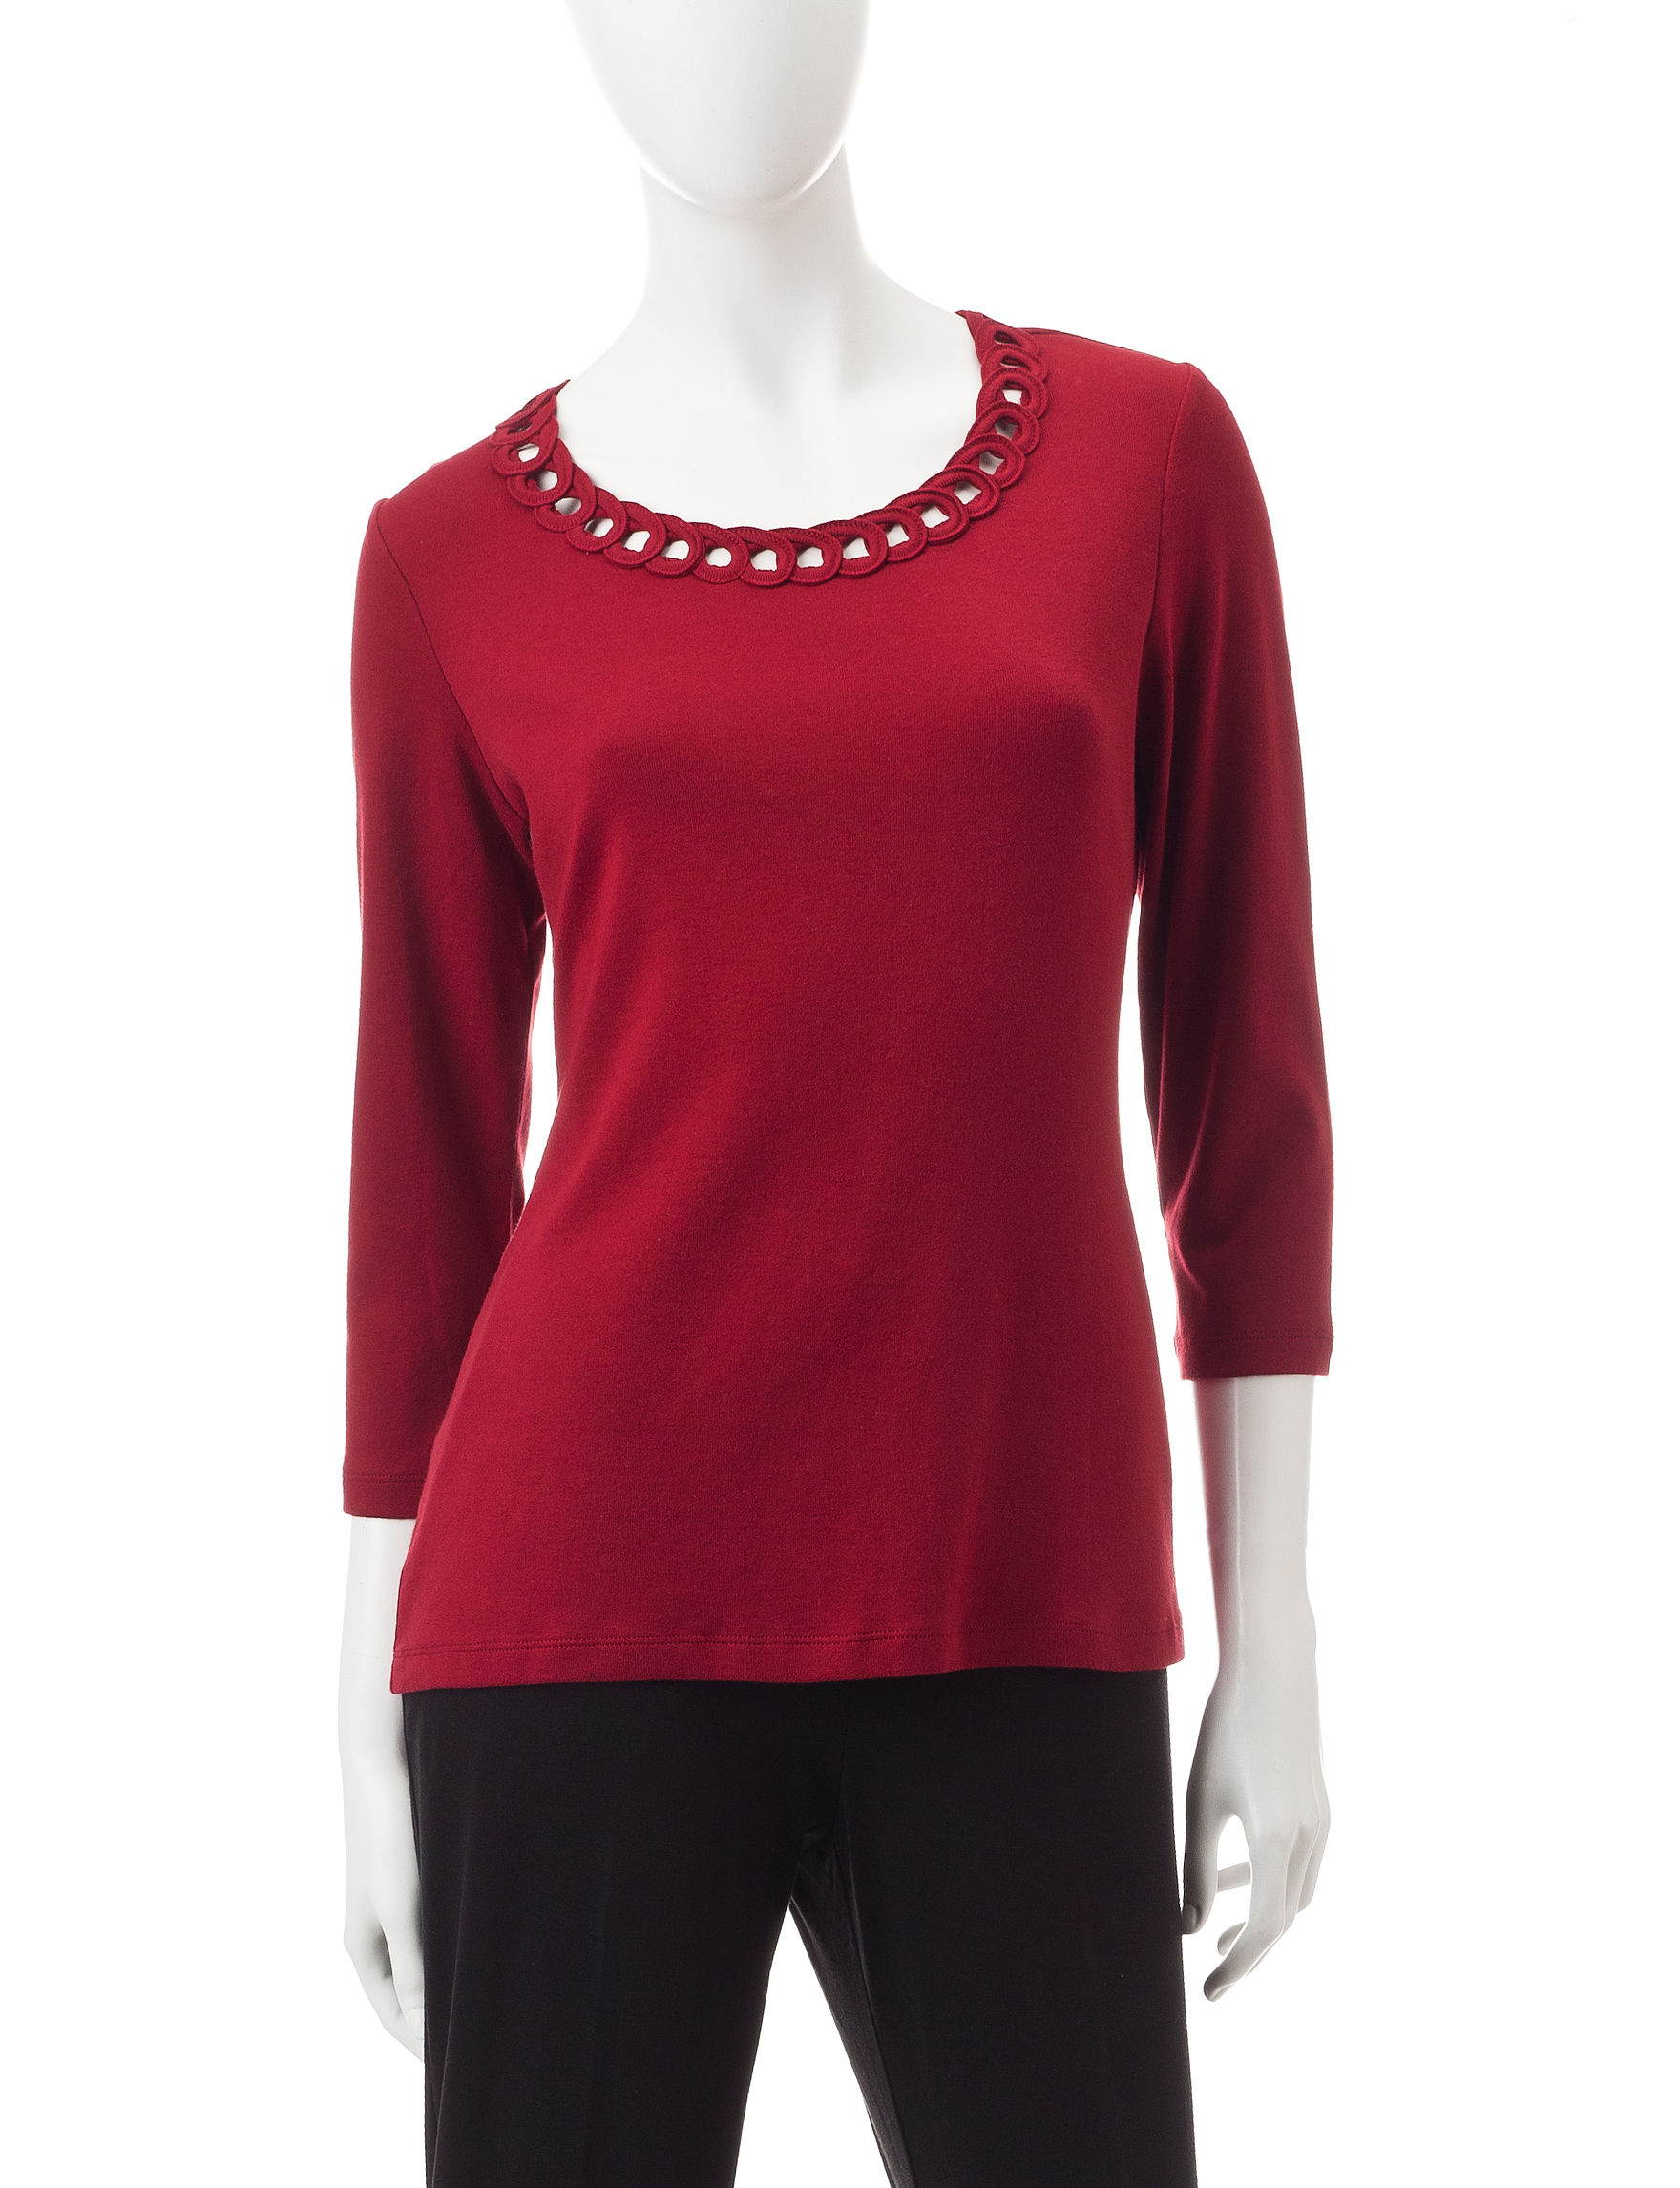 Pebble Beach Polo >> Rebecca Malone Braided Knit Top | Stage Stores